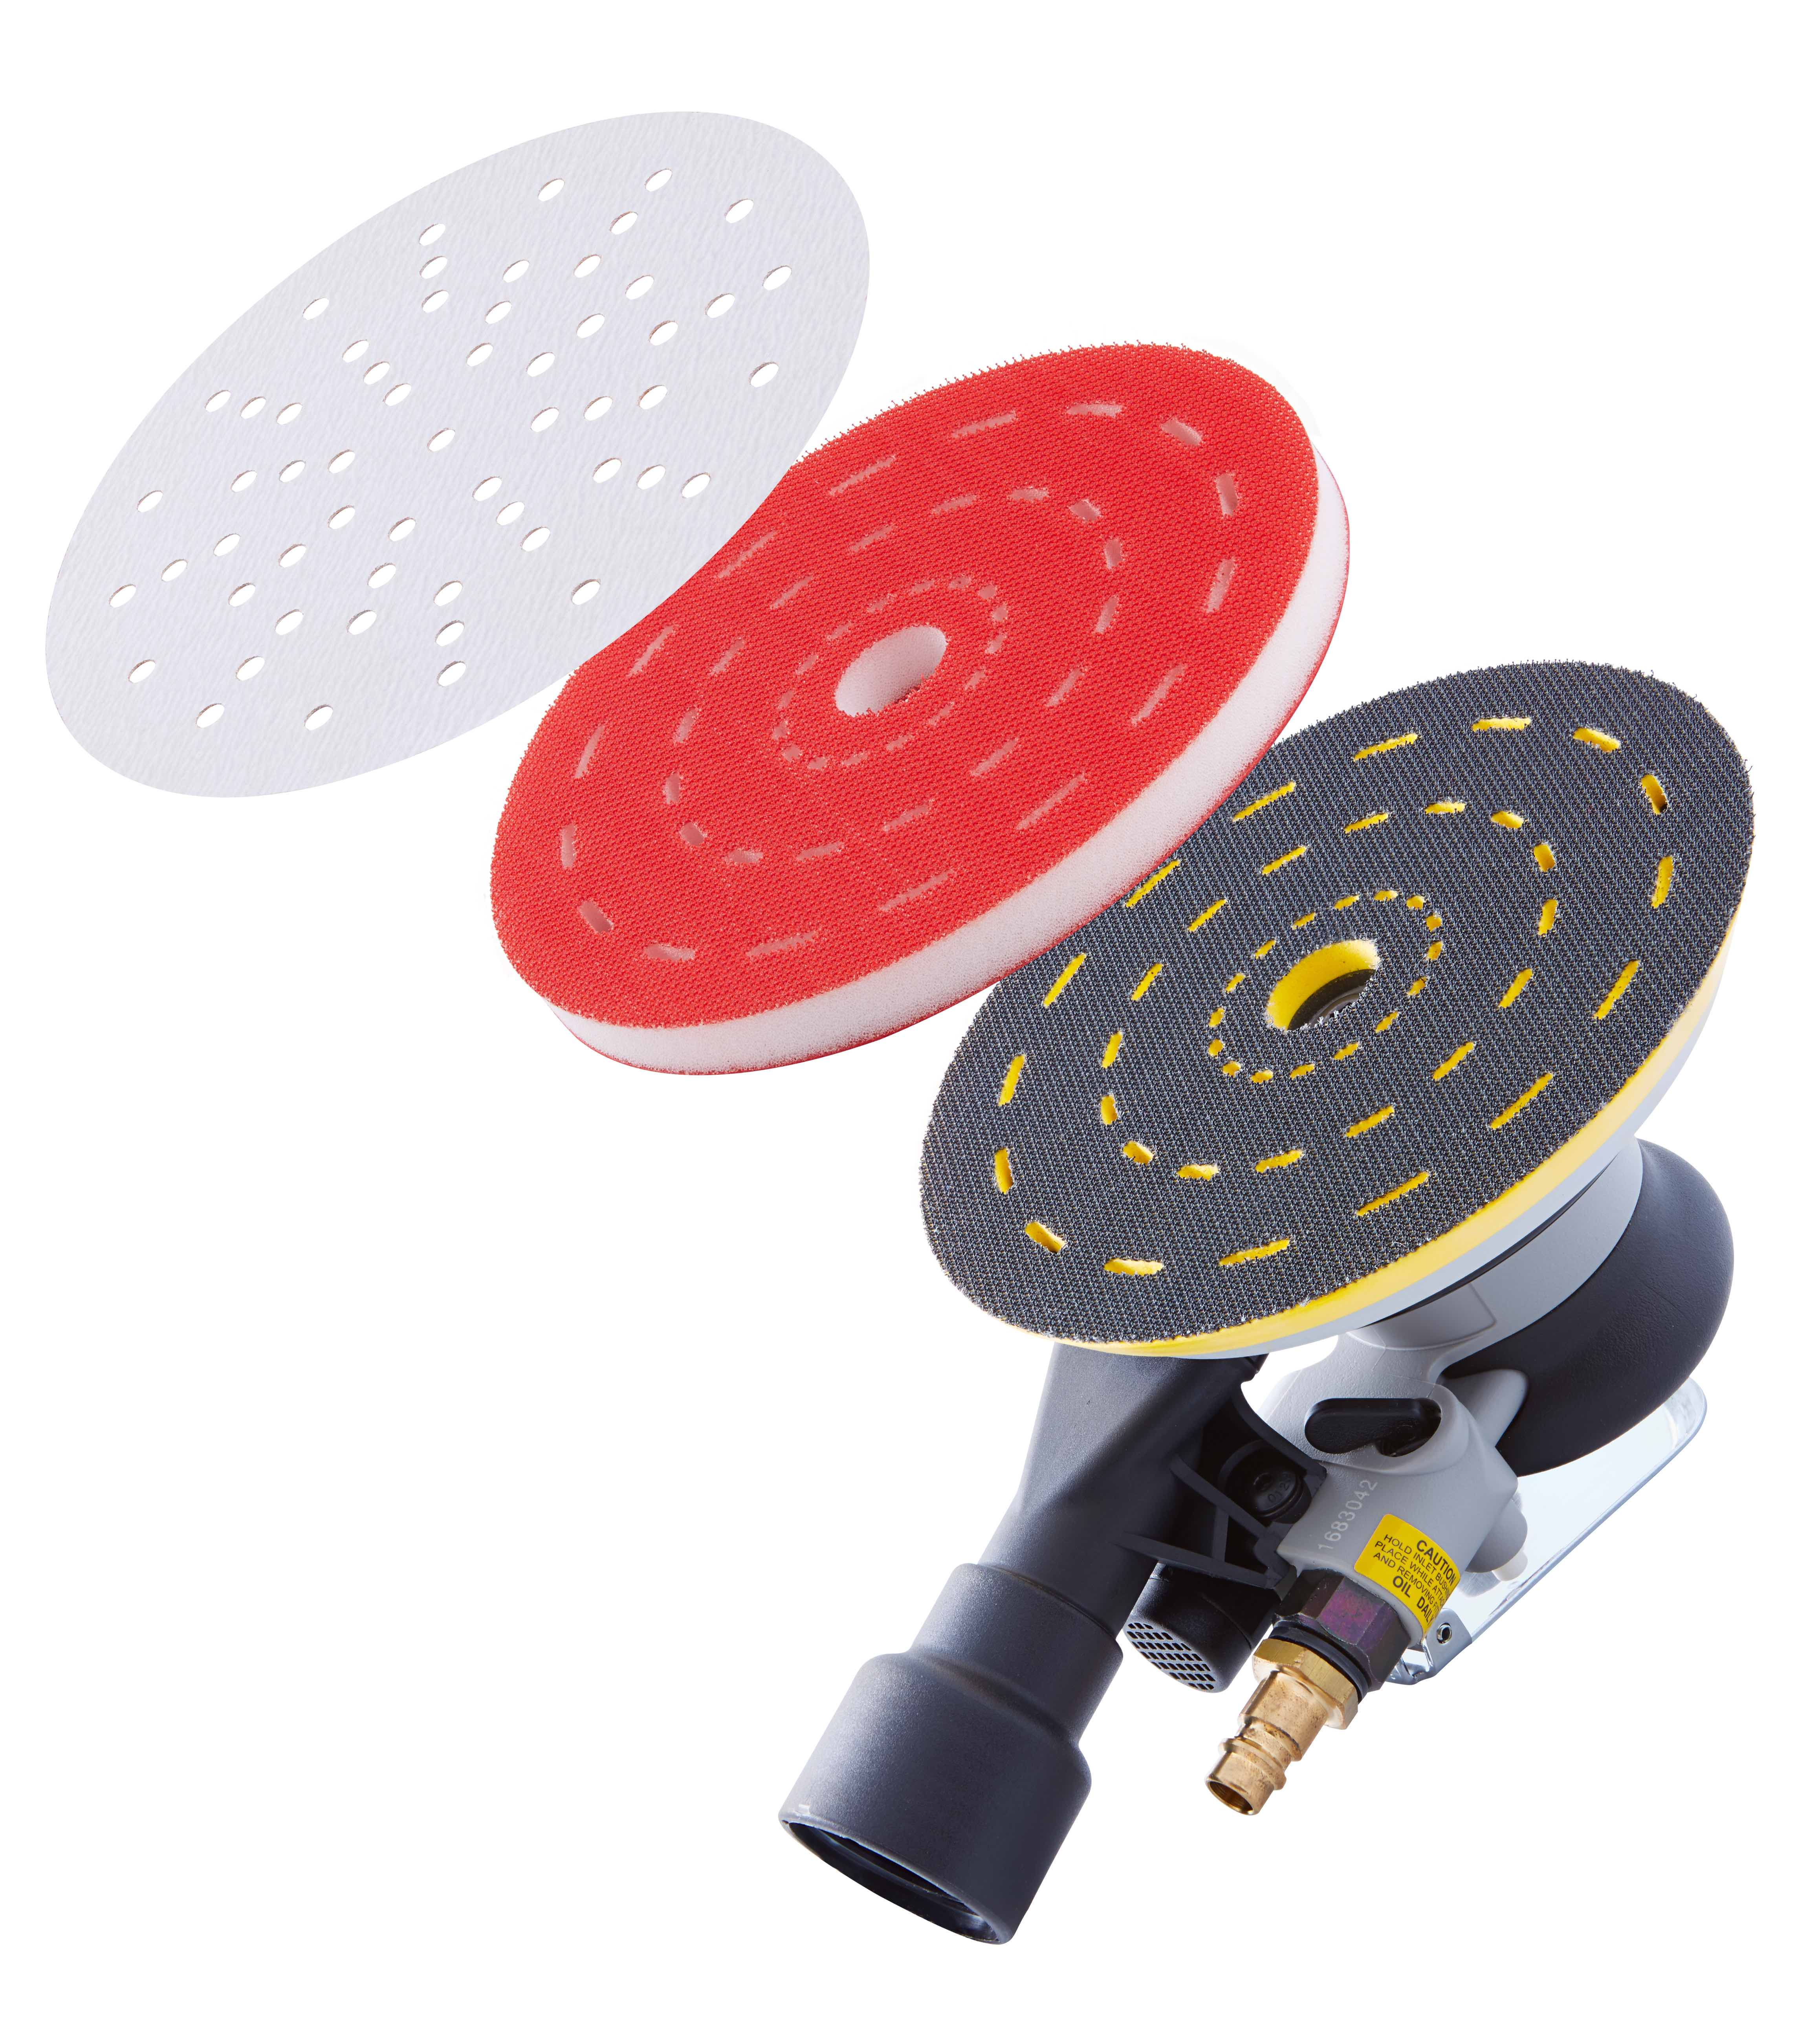 5_Ultravent_System_Components_DiscInterfaceBackingPadOrbitalbSander.jpg